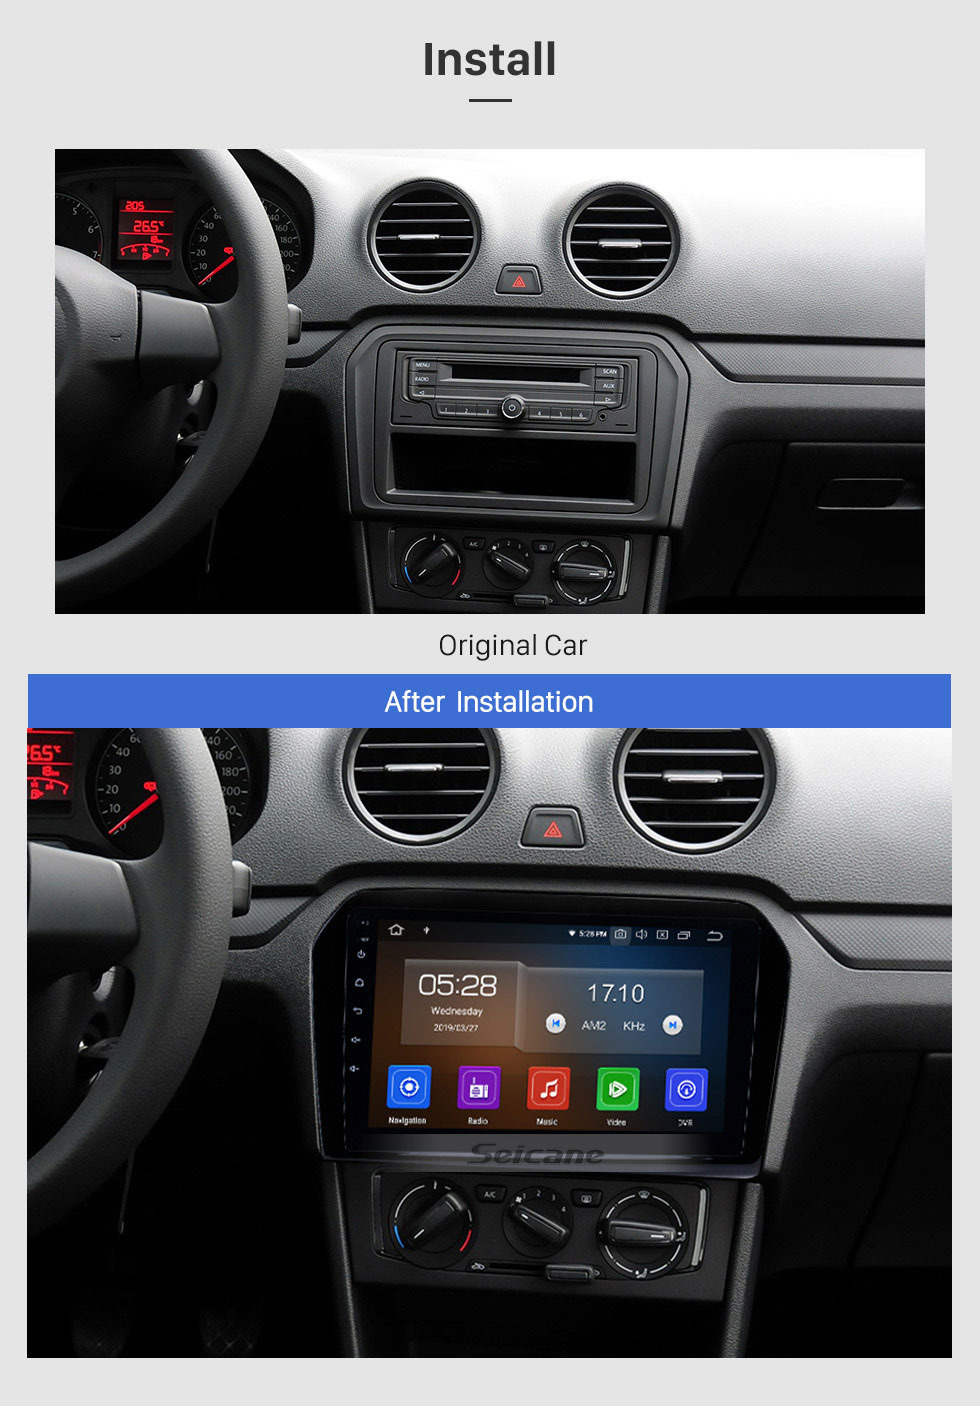 Seicane 9 Inch Android 9.0 HD Touchscreen Radio For 2012 2013 2014 2015 VW Volkswagen Passat JETTA with 3G WiFi GPS Navigation system TPMS DVR OBD II Rear camera AUX USB Video 3G WiFi Bluetooth